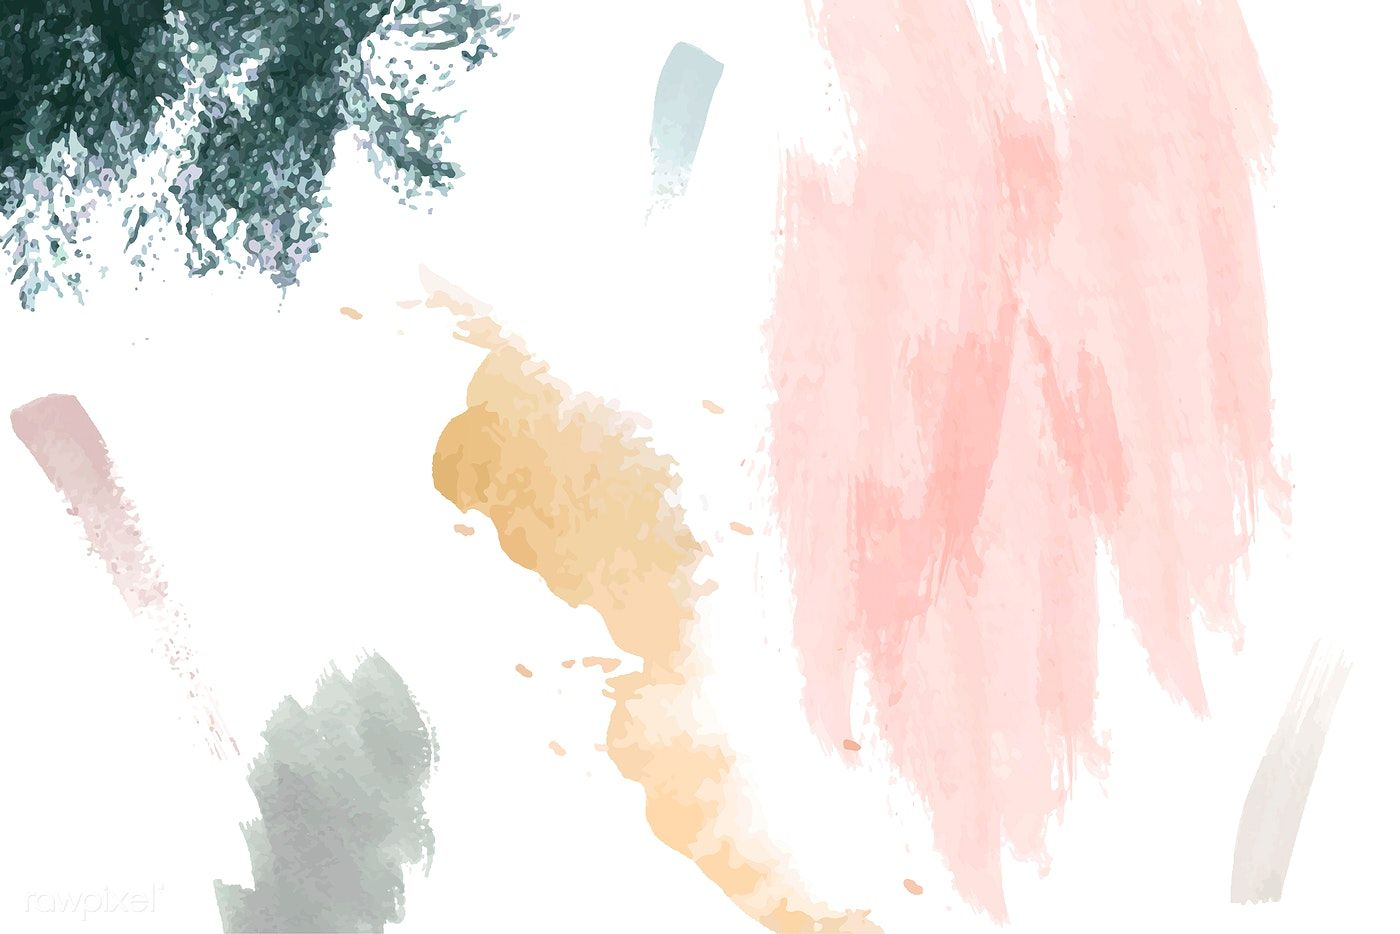 Pastel Paintbrush Stroke Textured On A White Background Vector Free Image By Rawpixel Com Kung Textured Background Vector Free Pastel Watercolor